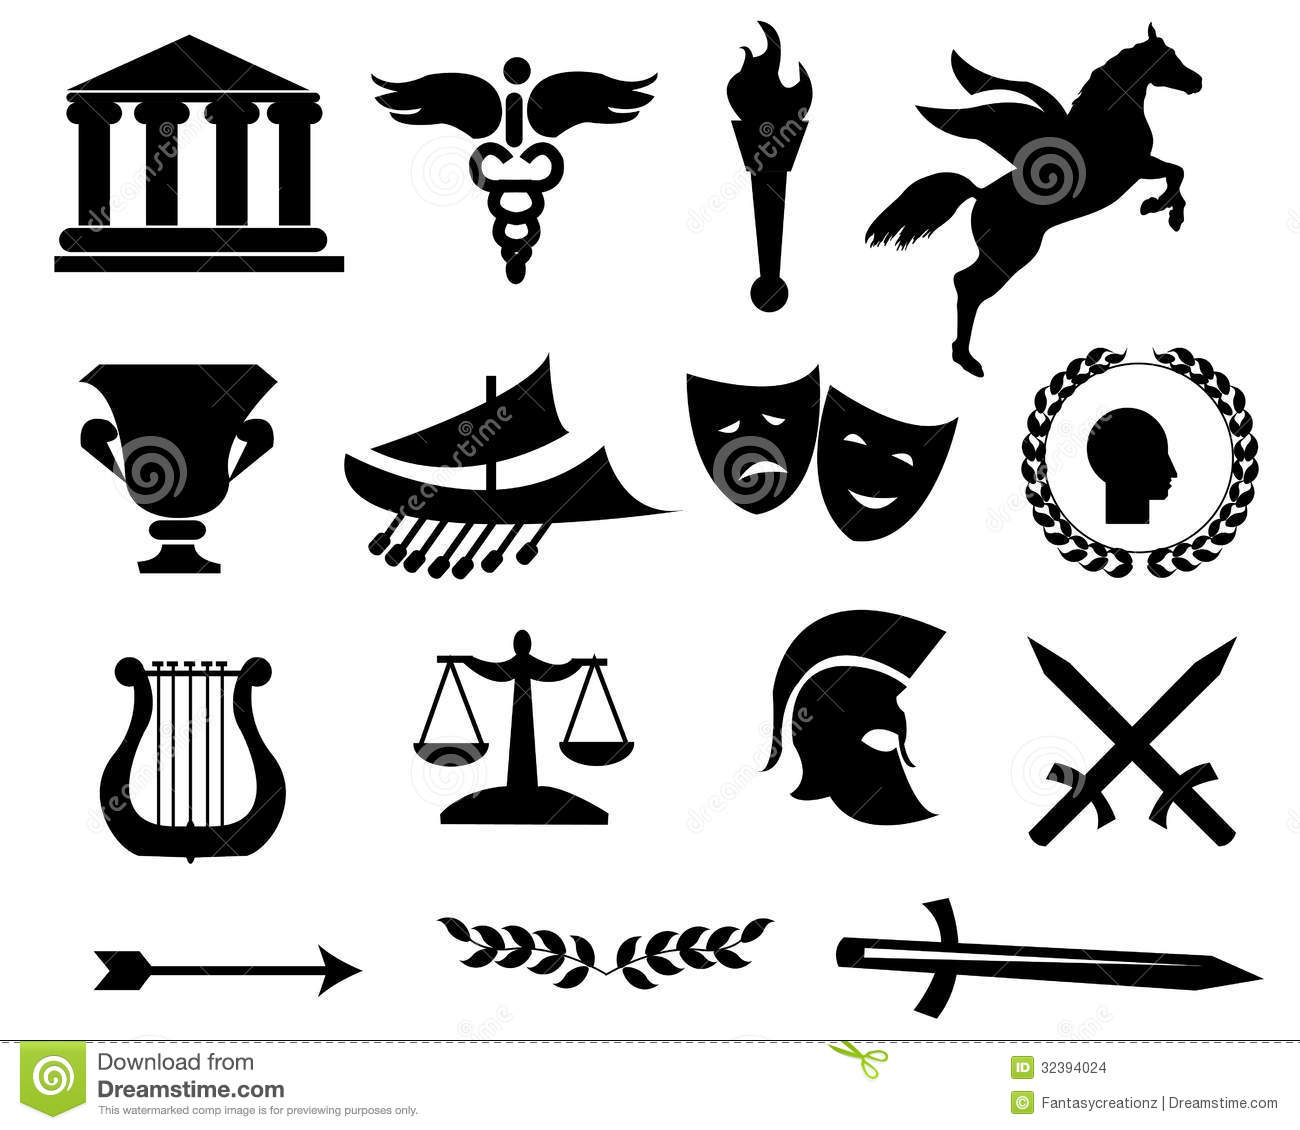 Important greek symbols image collections symbol and sign ideas ancient greek symbols for family buycottarizona biocorpaavc